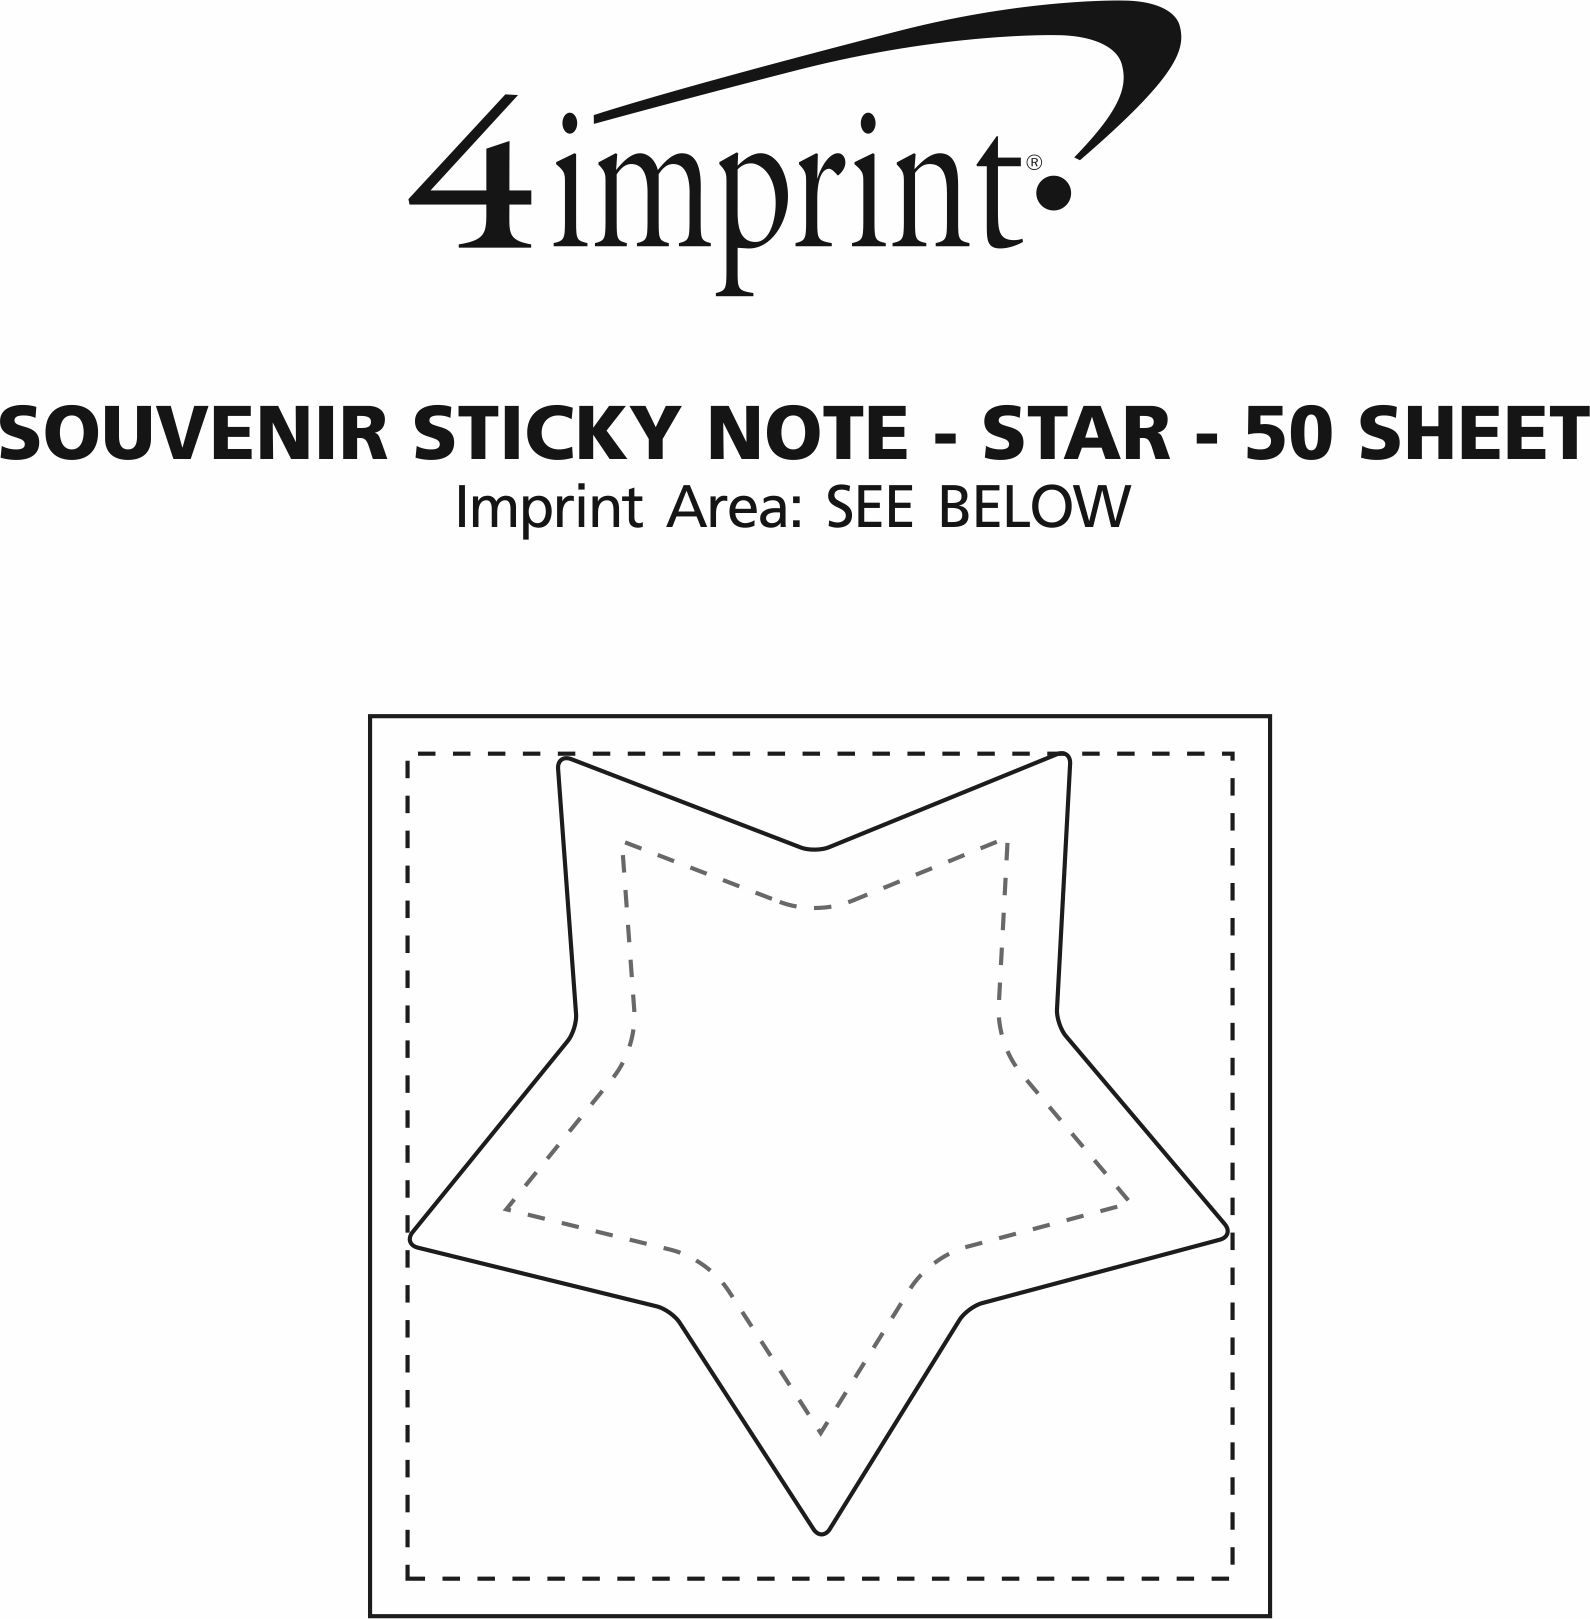 Imprint Area of Bic Sticky Note - Star - 50 Sheet